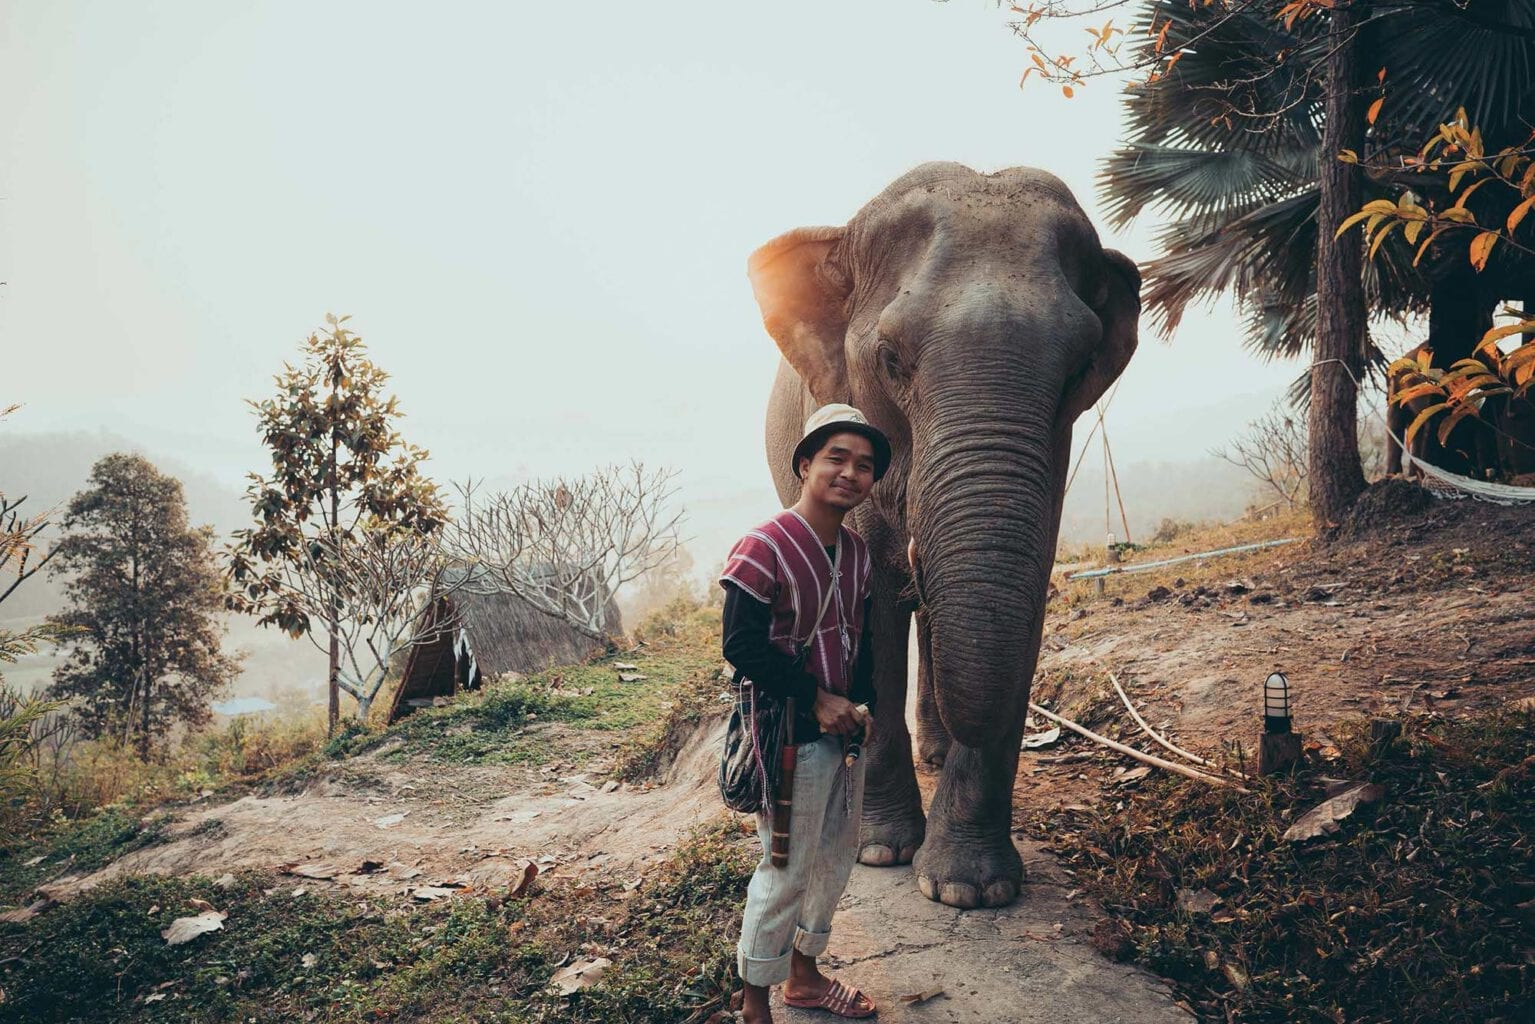 A DAY IN THE LIFE OF ELEPHANTS - Full dfay Chiang Mai photo tour